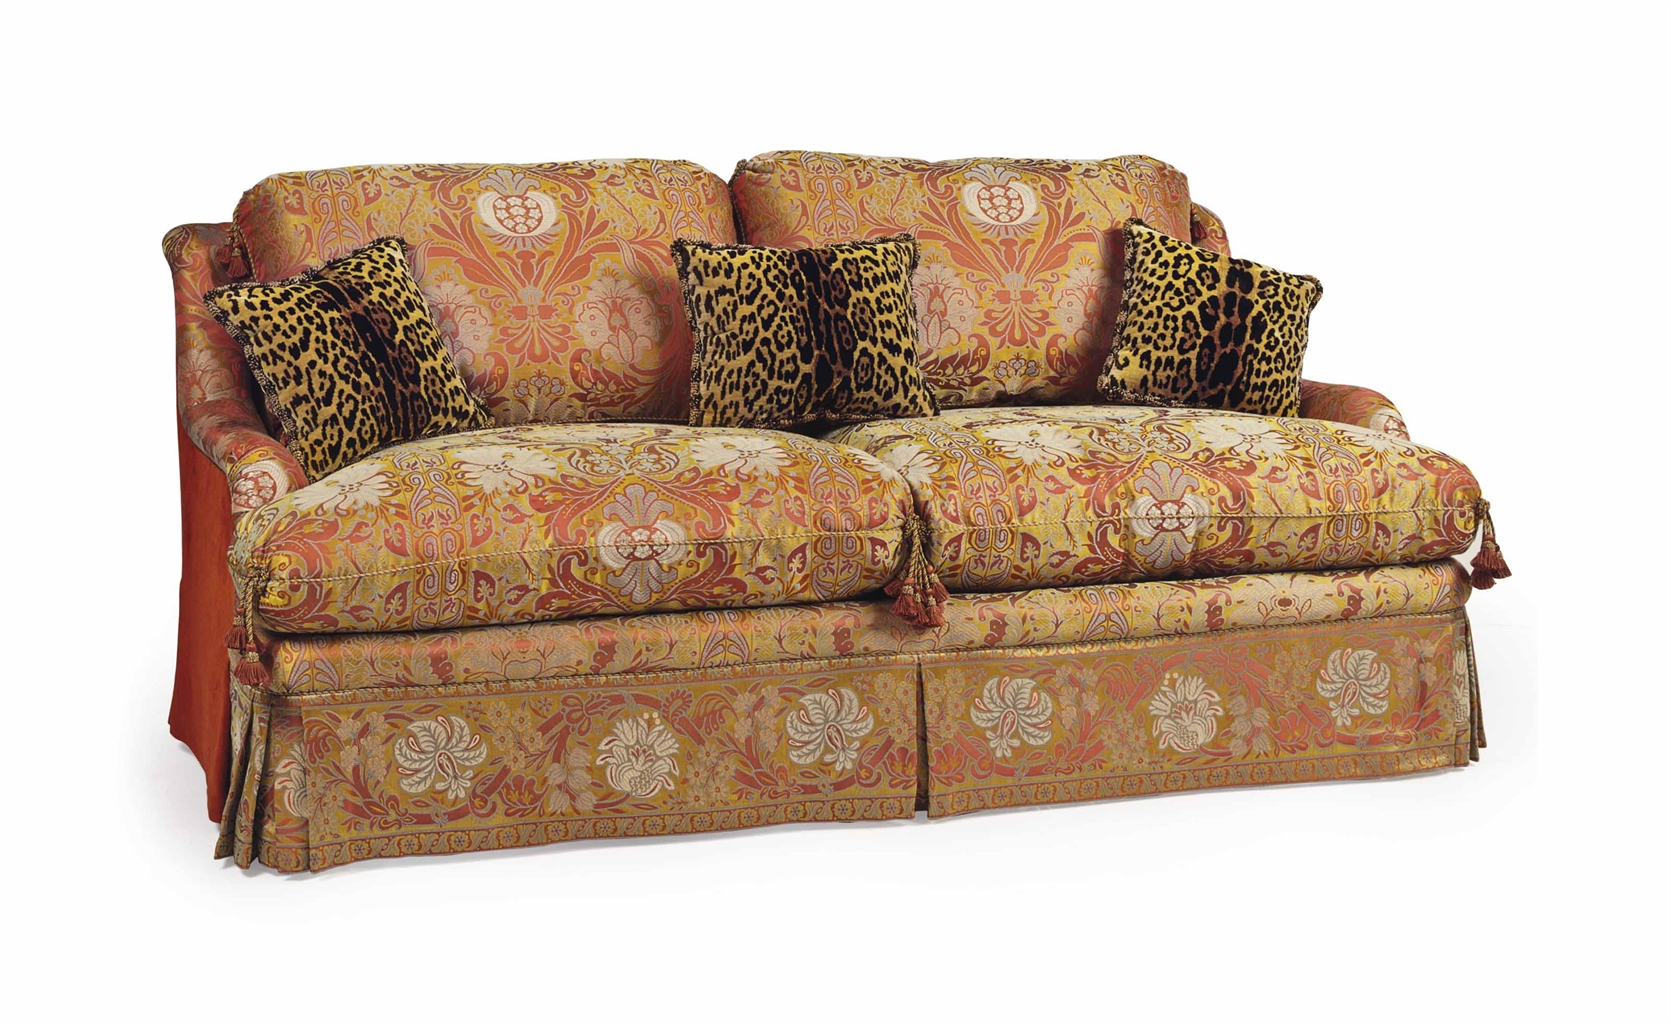 A Rose And Yellow Colored Floral Pattern Two Seat Sofa